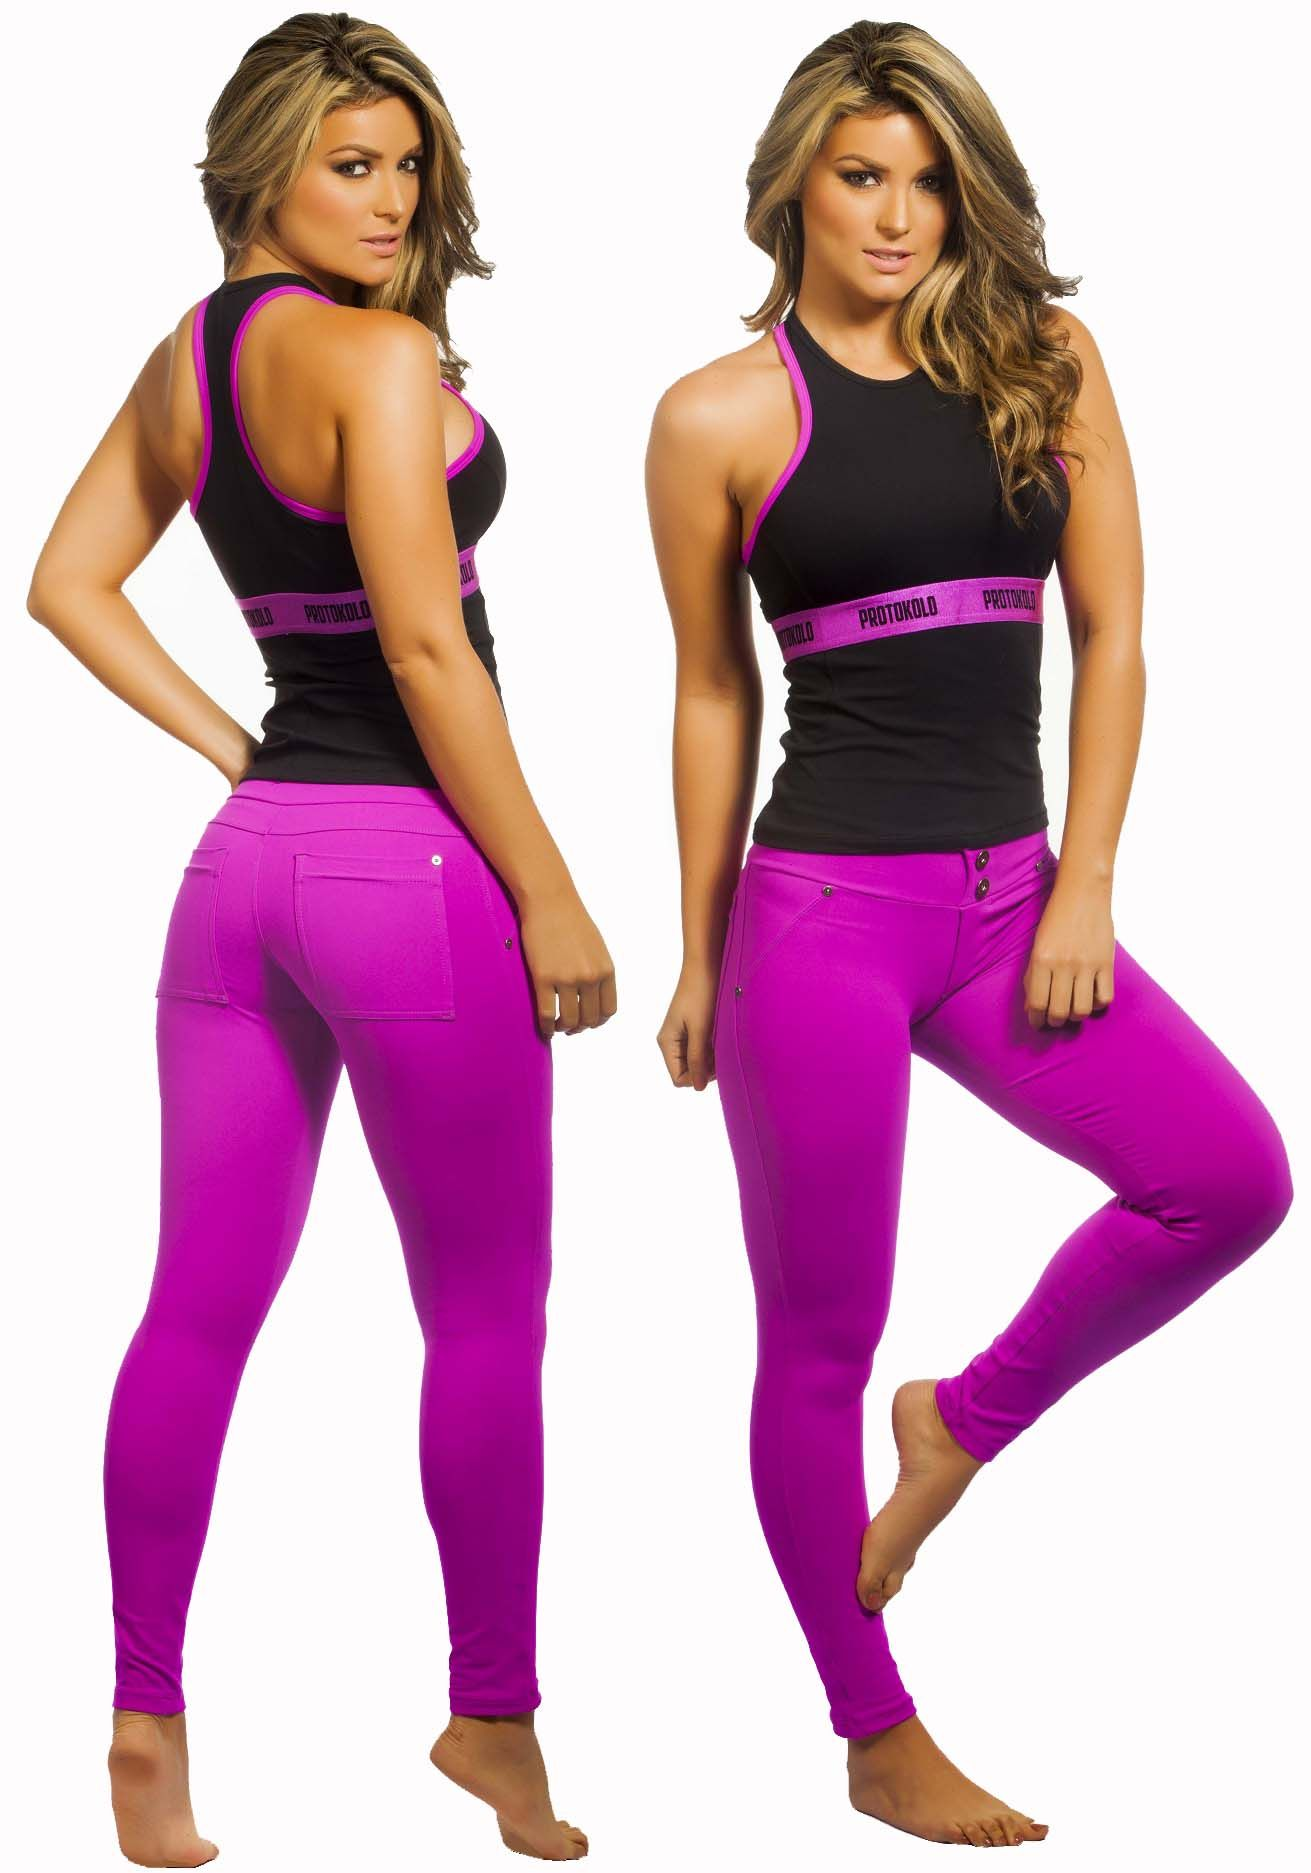 532d2d8998 Women Sports Clothing and fantastic Sportswear from one of our best brands  Protokolo Sportswear! -